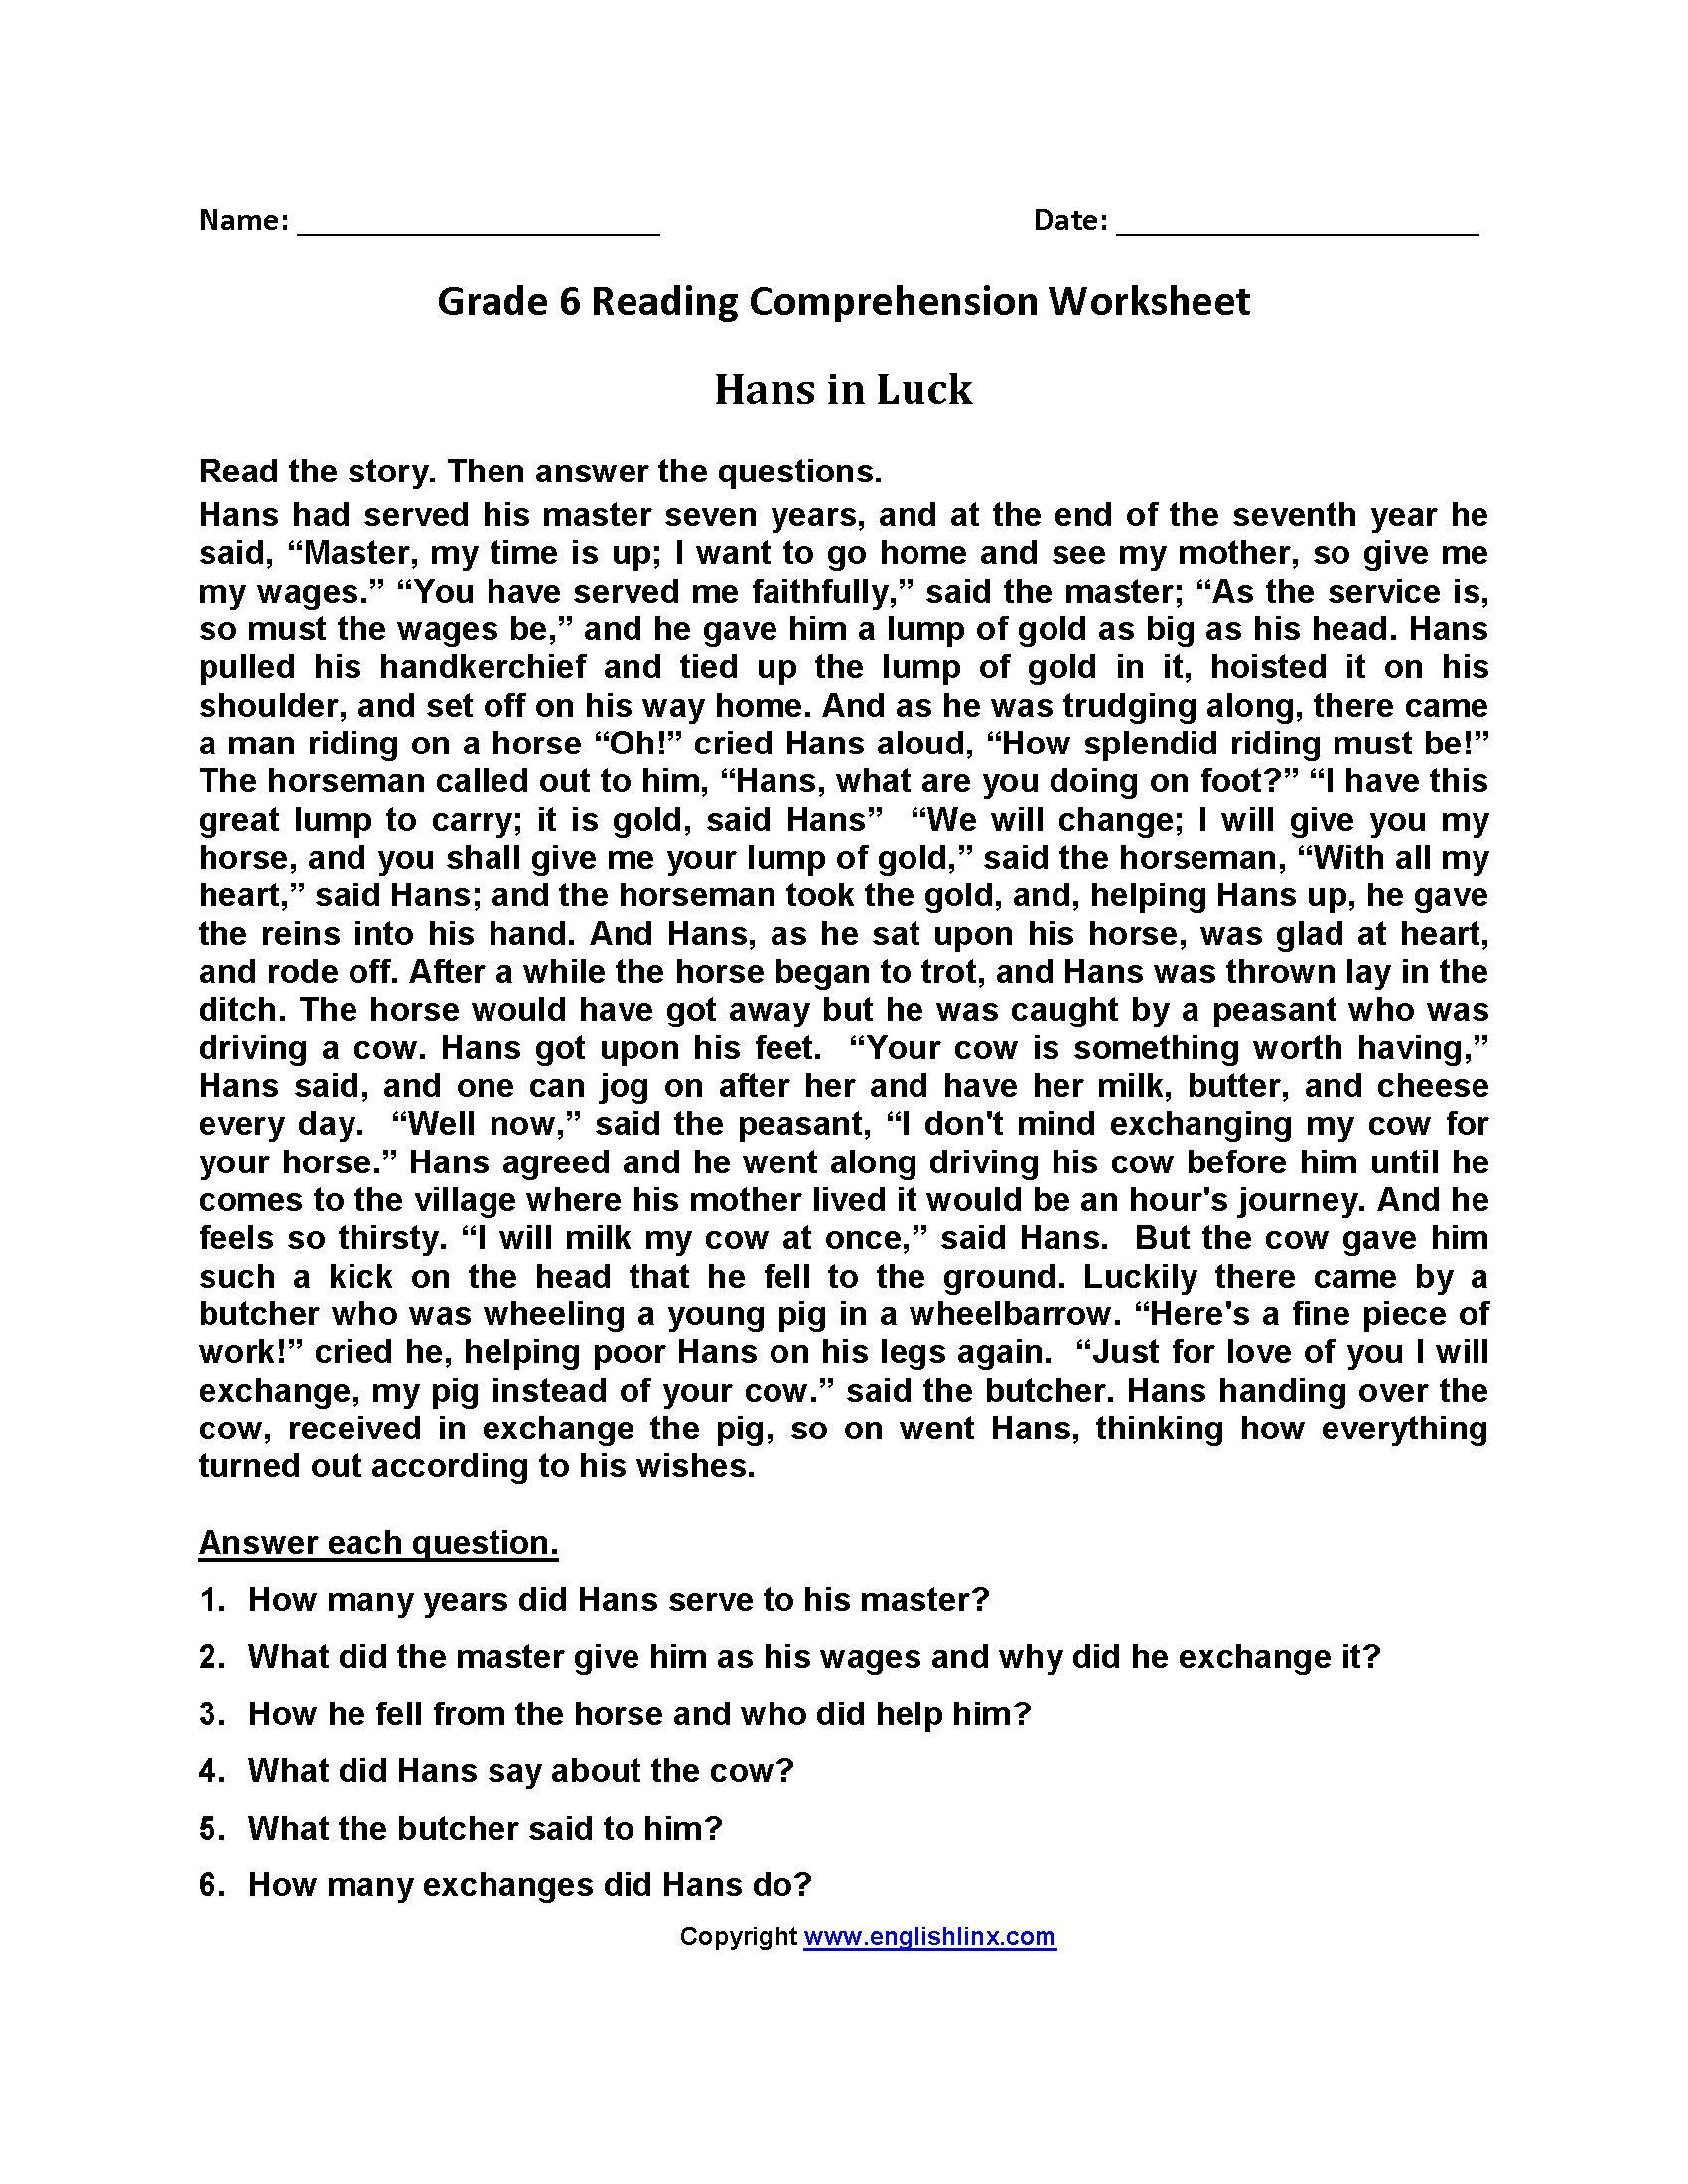 Reading Comprehension Worksheets 6th Grade Free Printable Reading Worksheets for Grade 6 In 2020